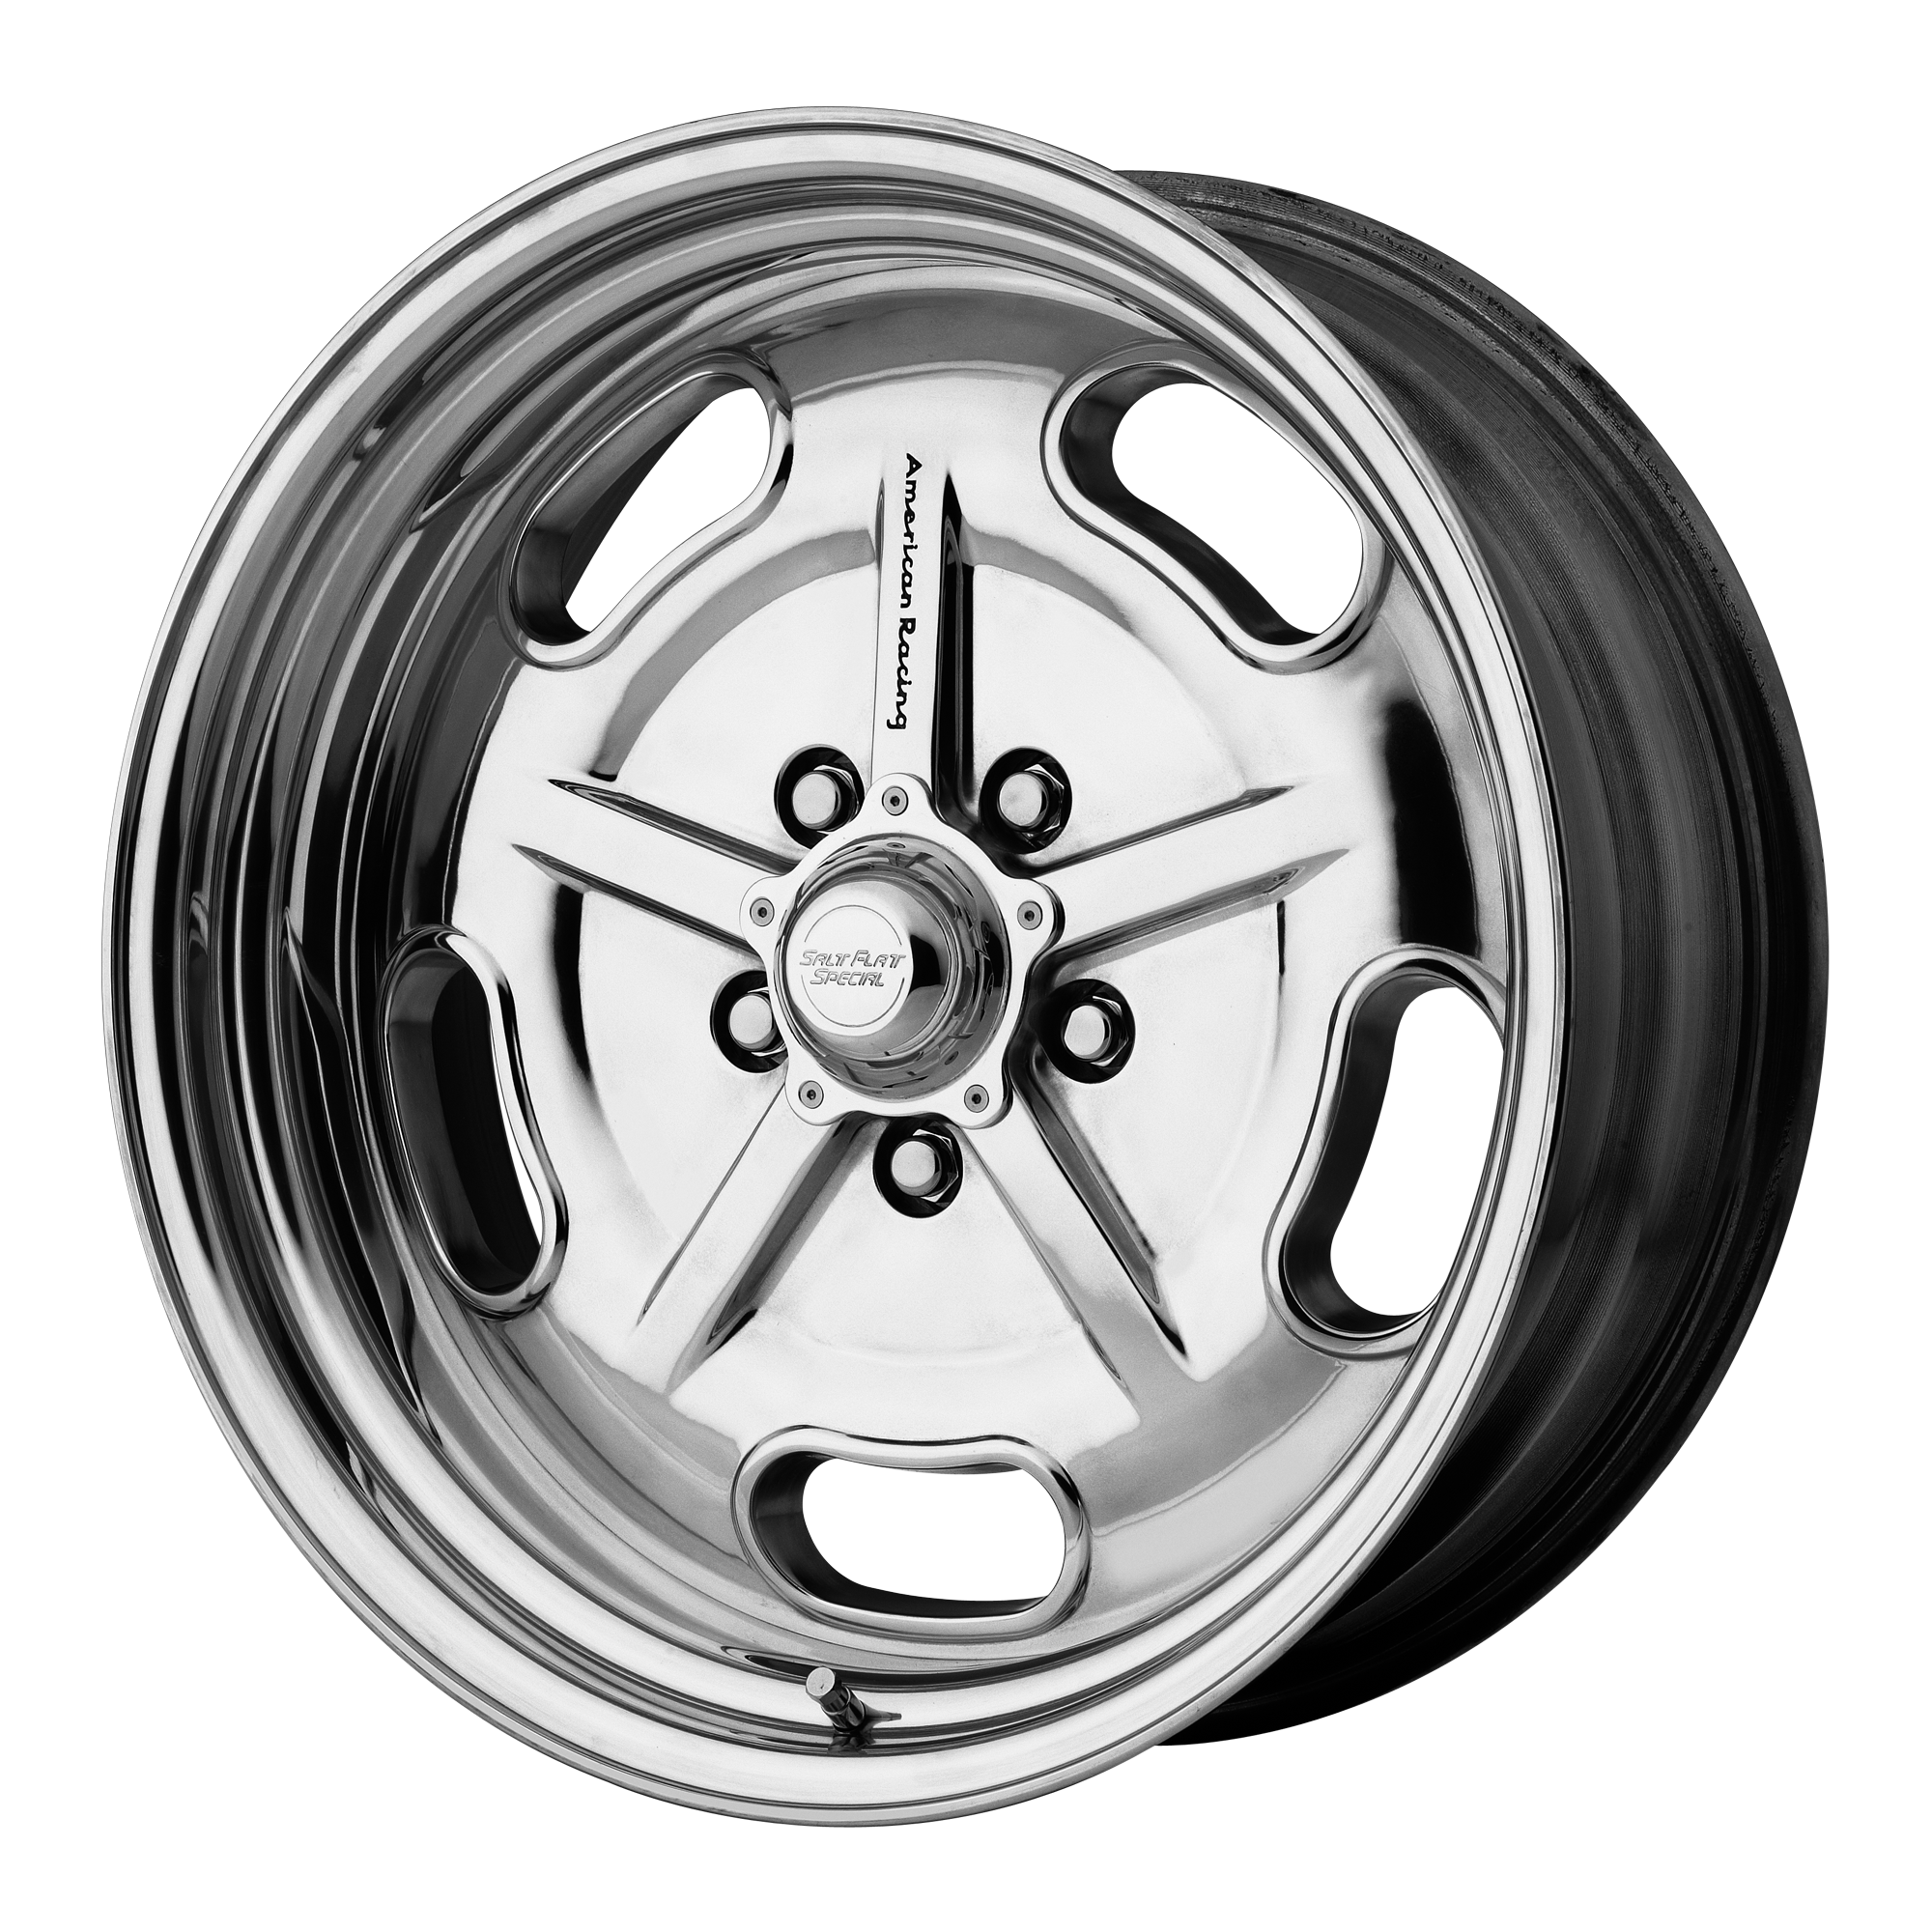 18x10 American Racing Wheels VN471 SALT FLAT SPECIAL Polished